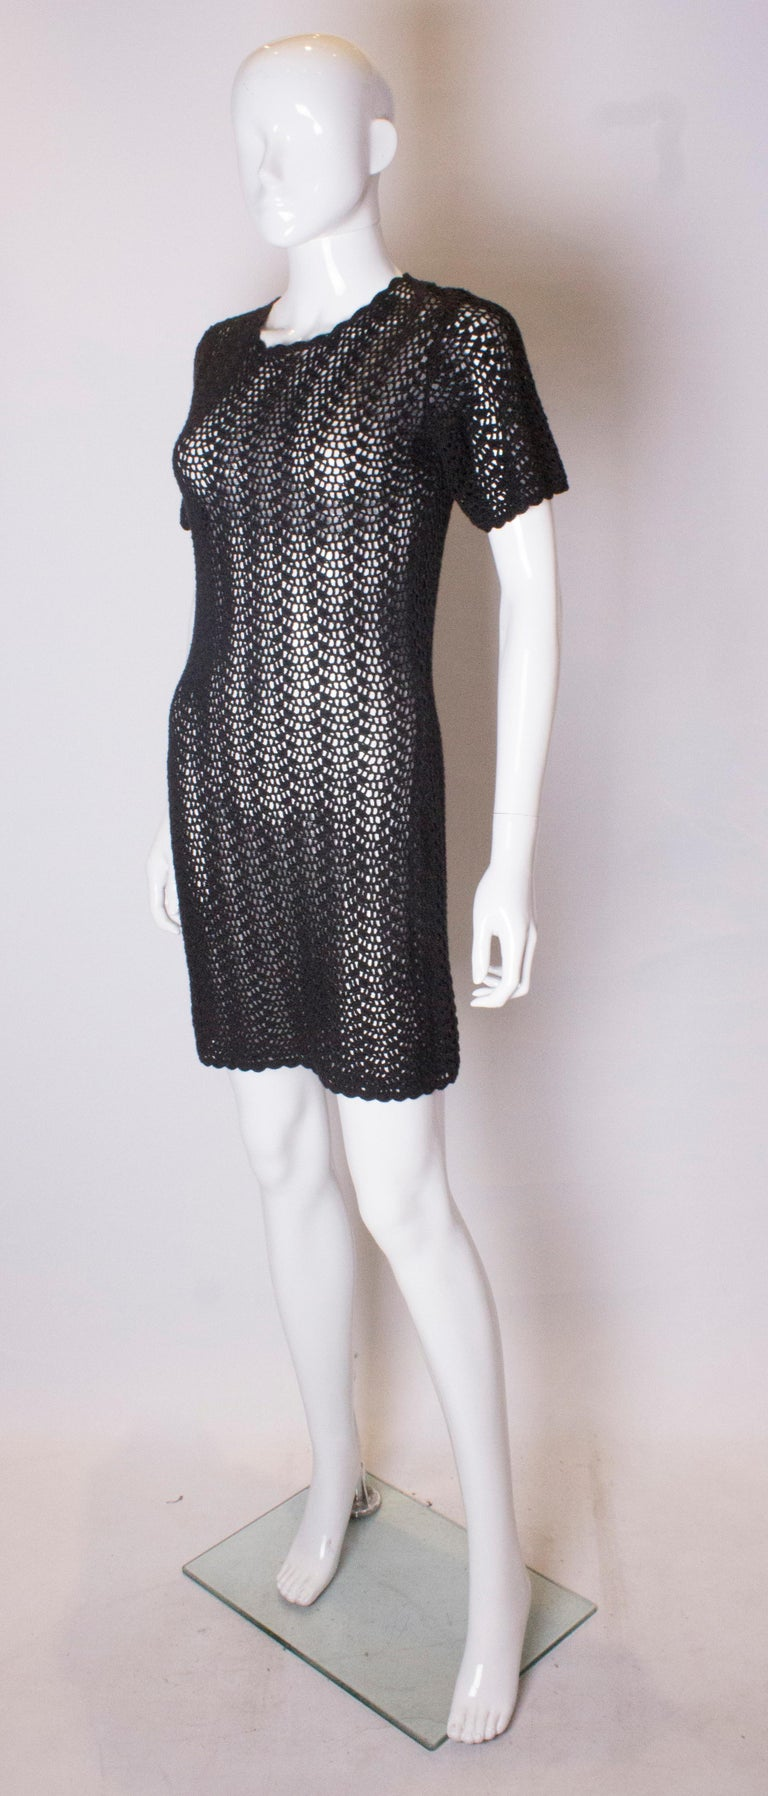 Vintage Black Crochet Mini Dress In Good Condition For Sale In London, GB